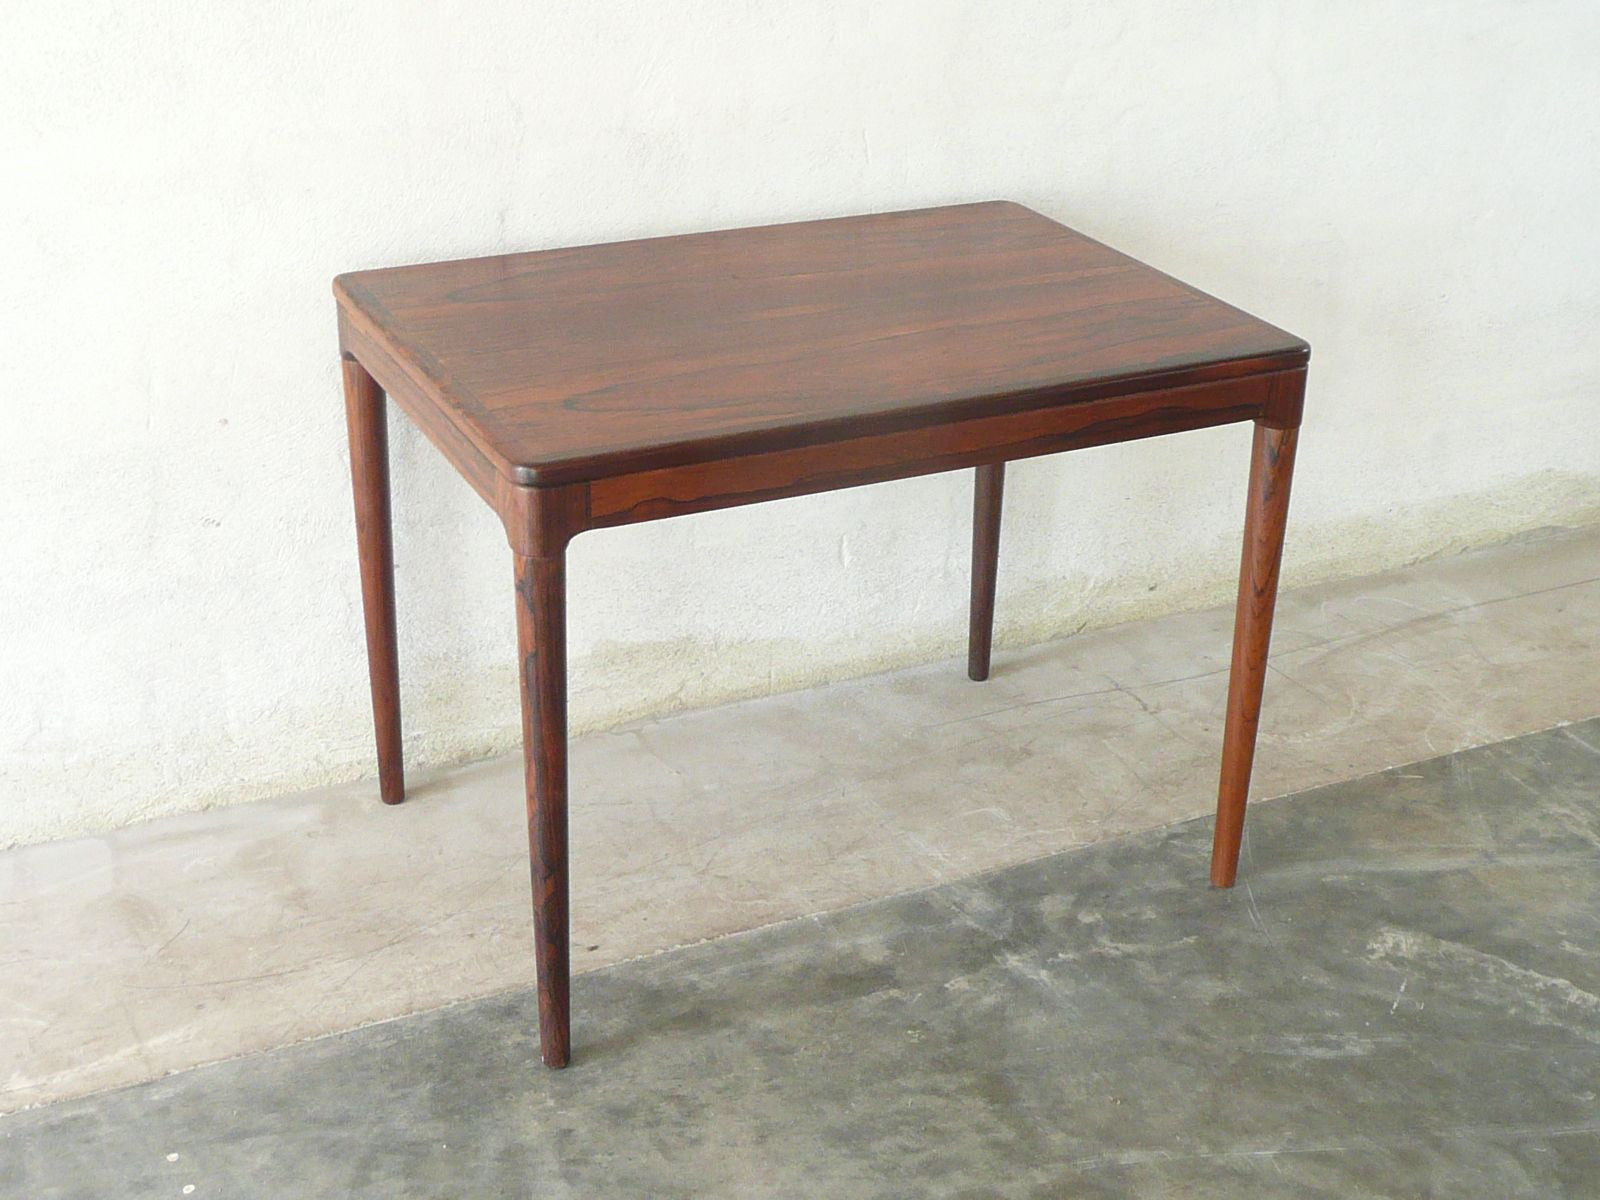 Rosewood occasional table by Mogens Kold